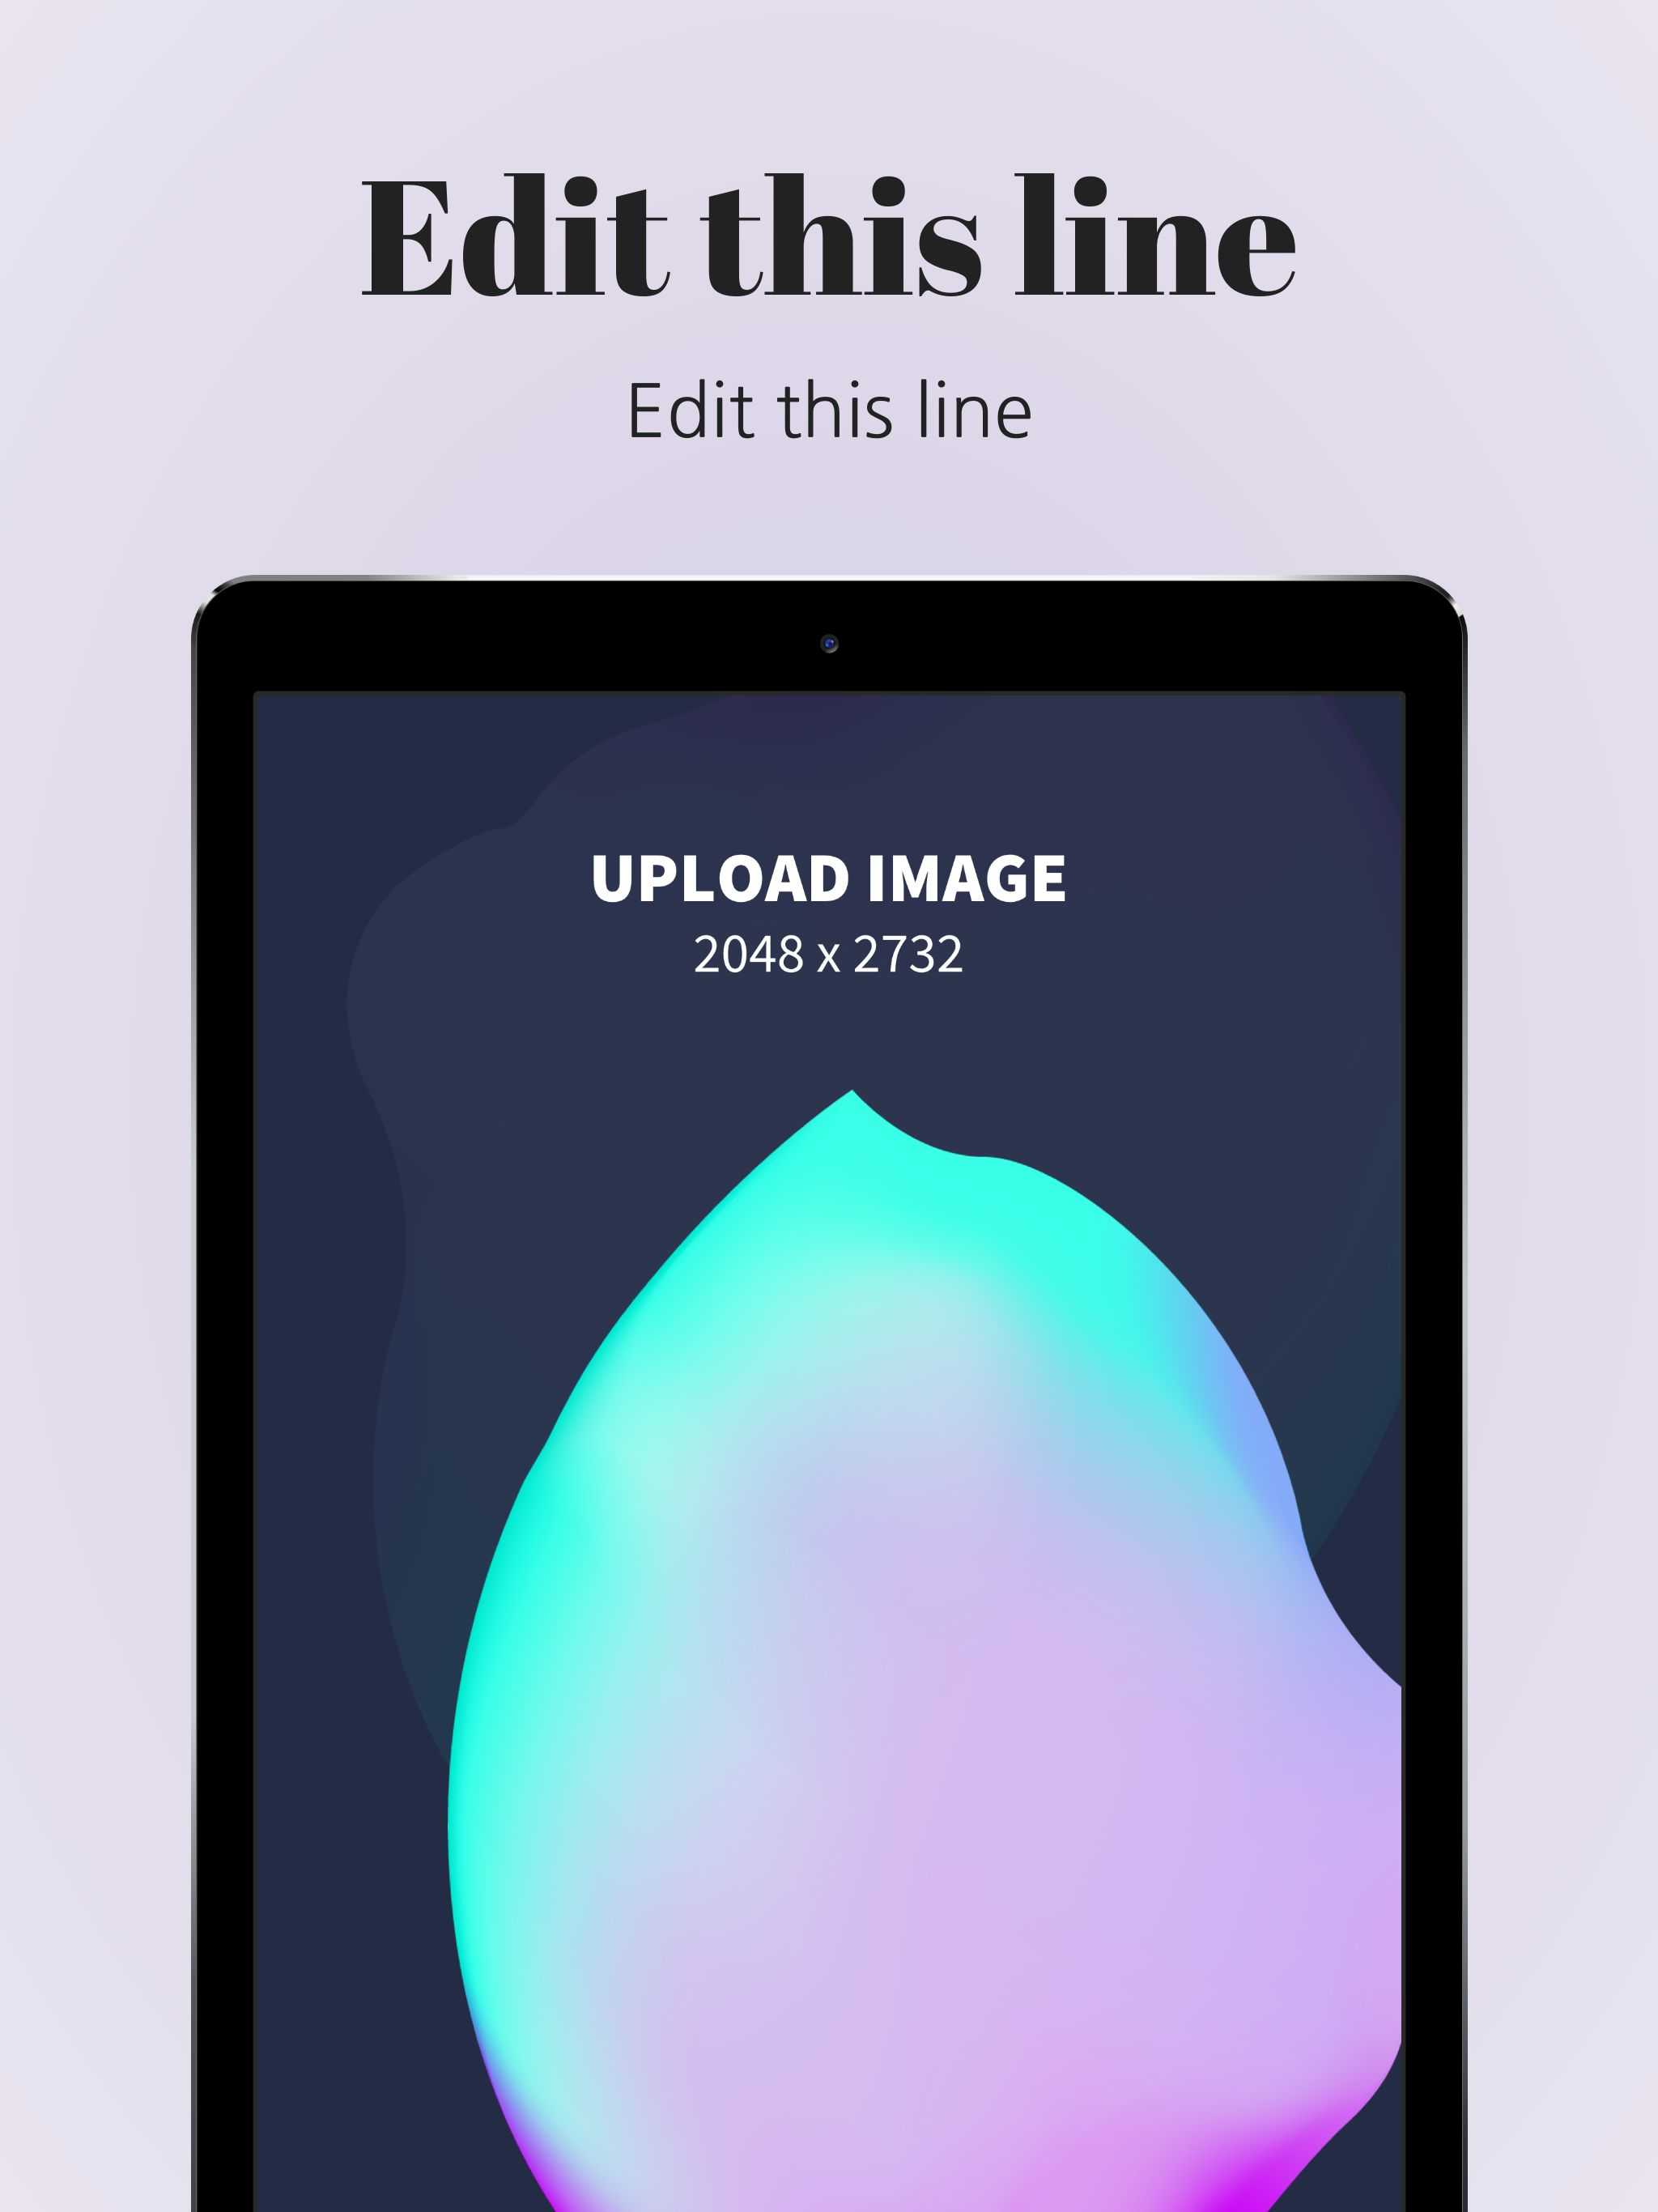 iPad Pro Screenshot 2 template. Quickly edit text, colors, images, and more for free.